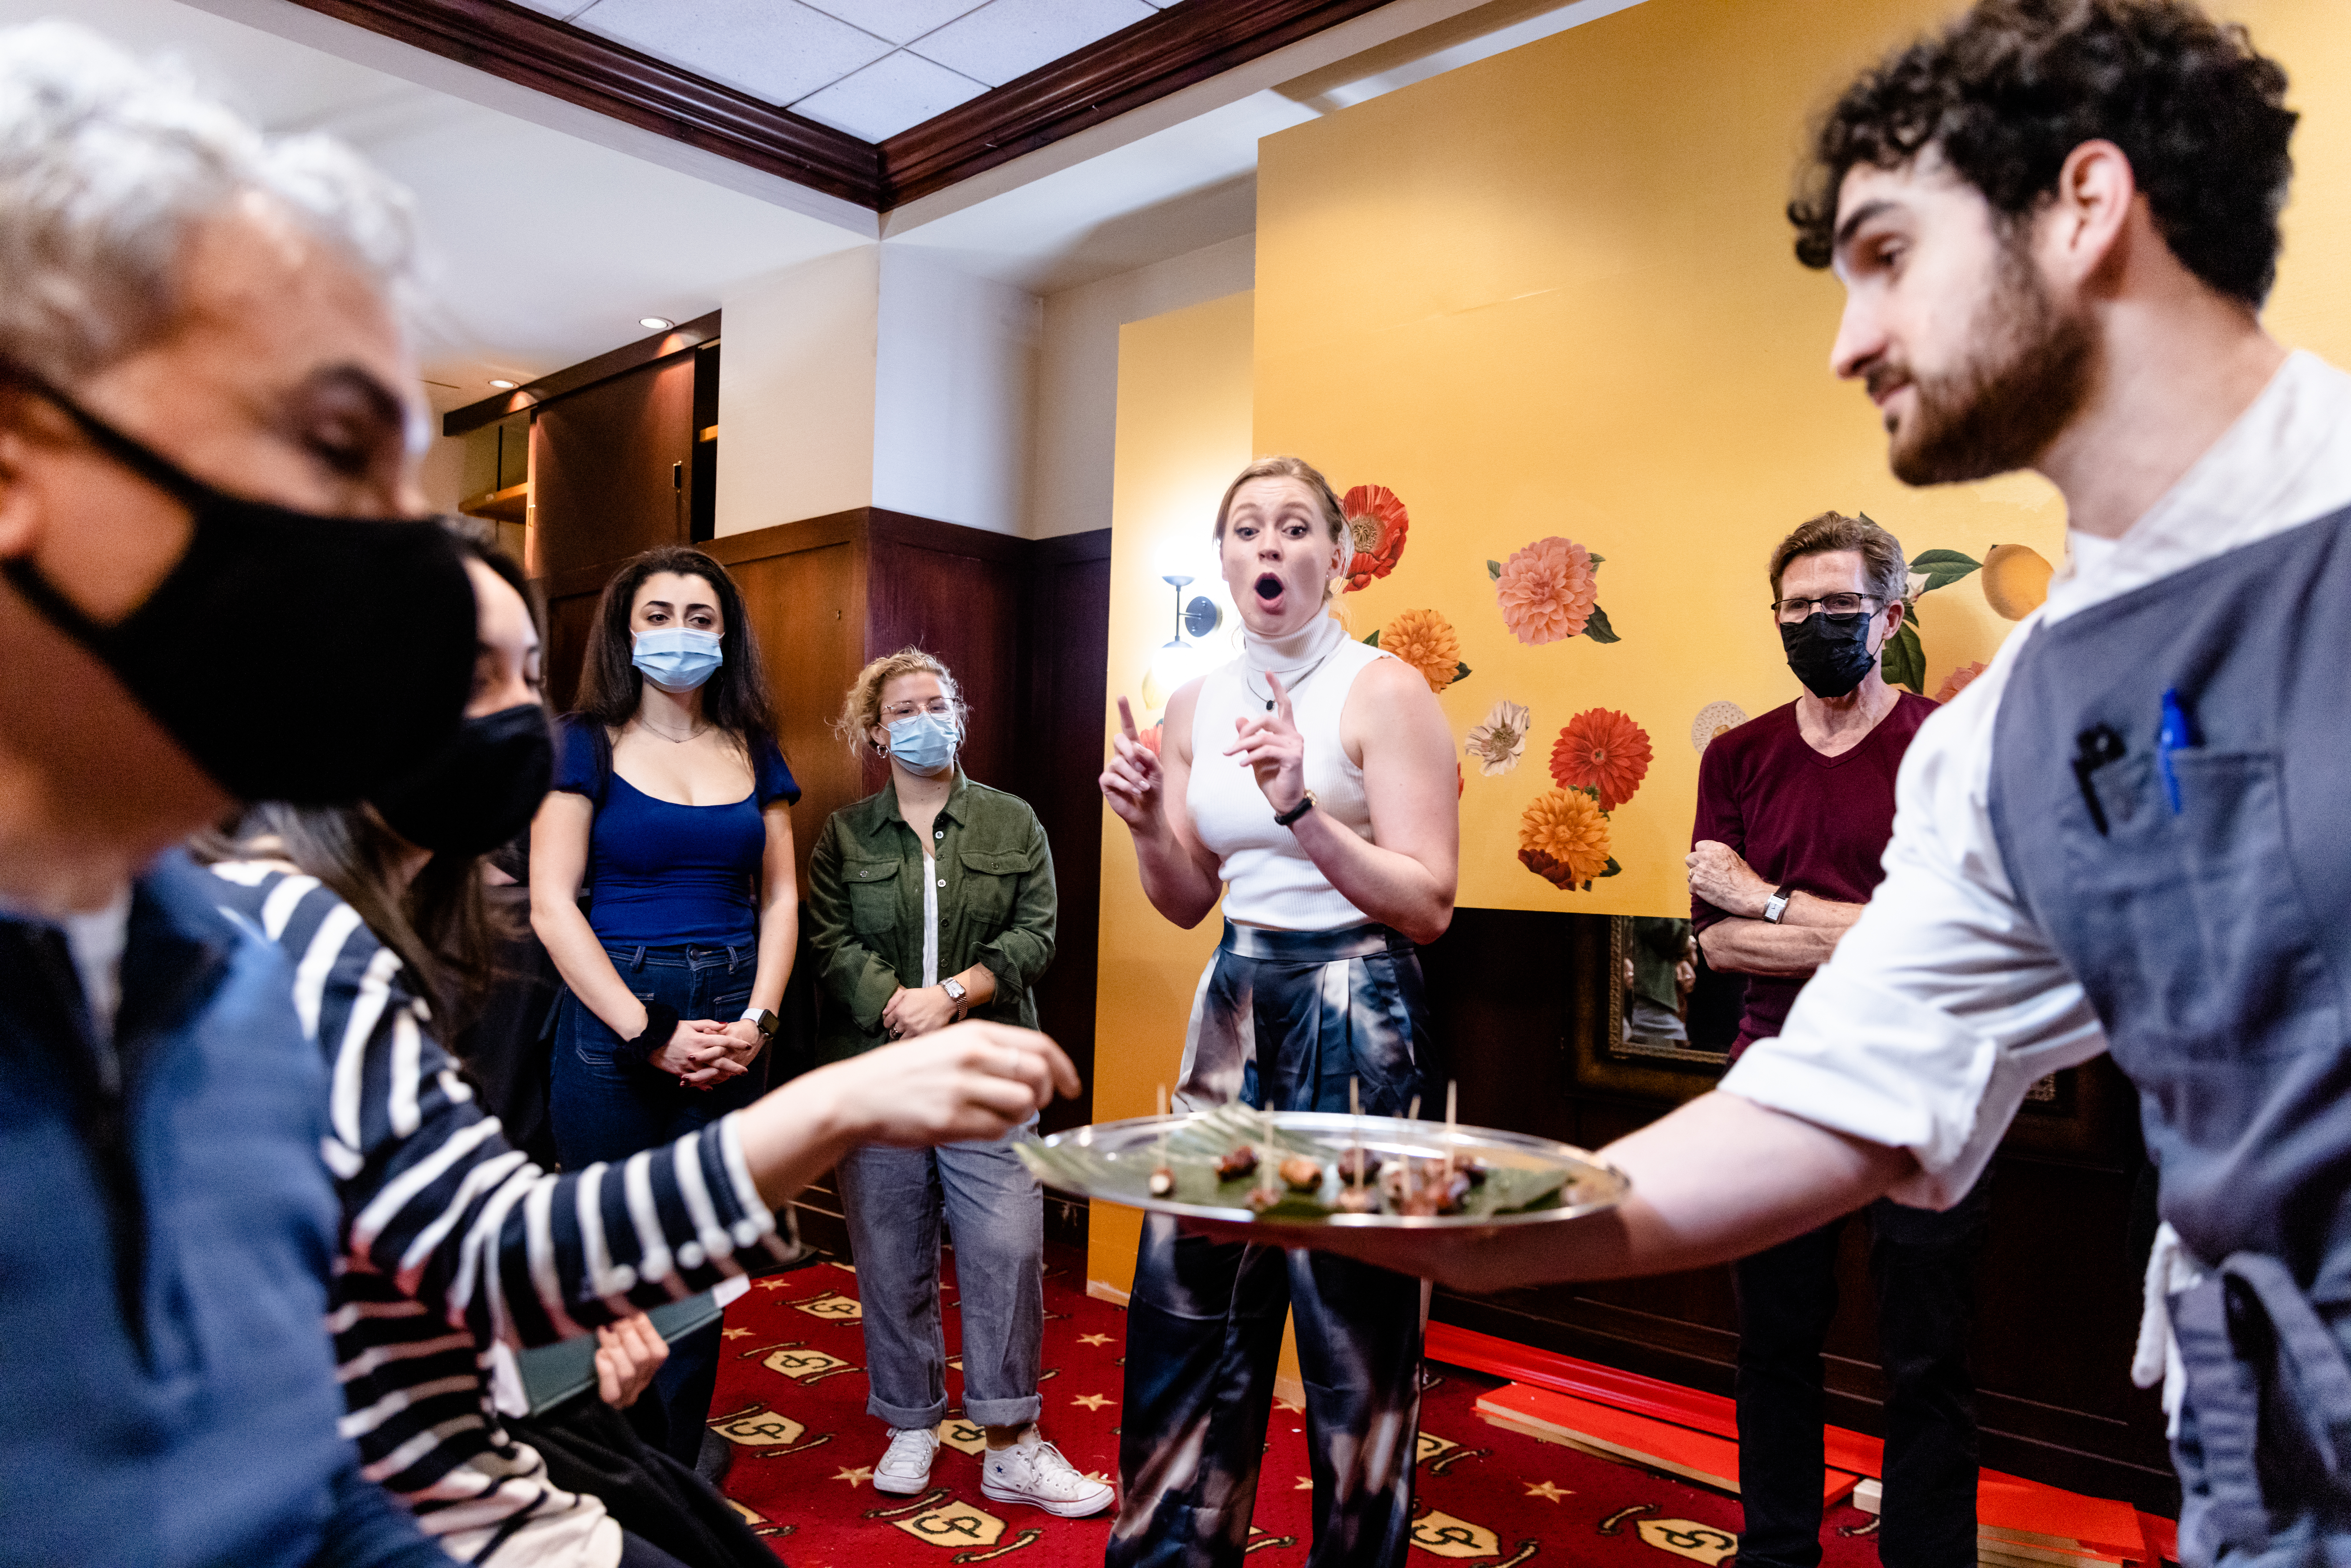 A waiter handing a platter of food to a masked person sitting down while a woman gasps in shock.